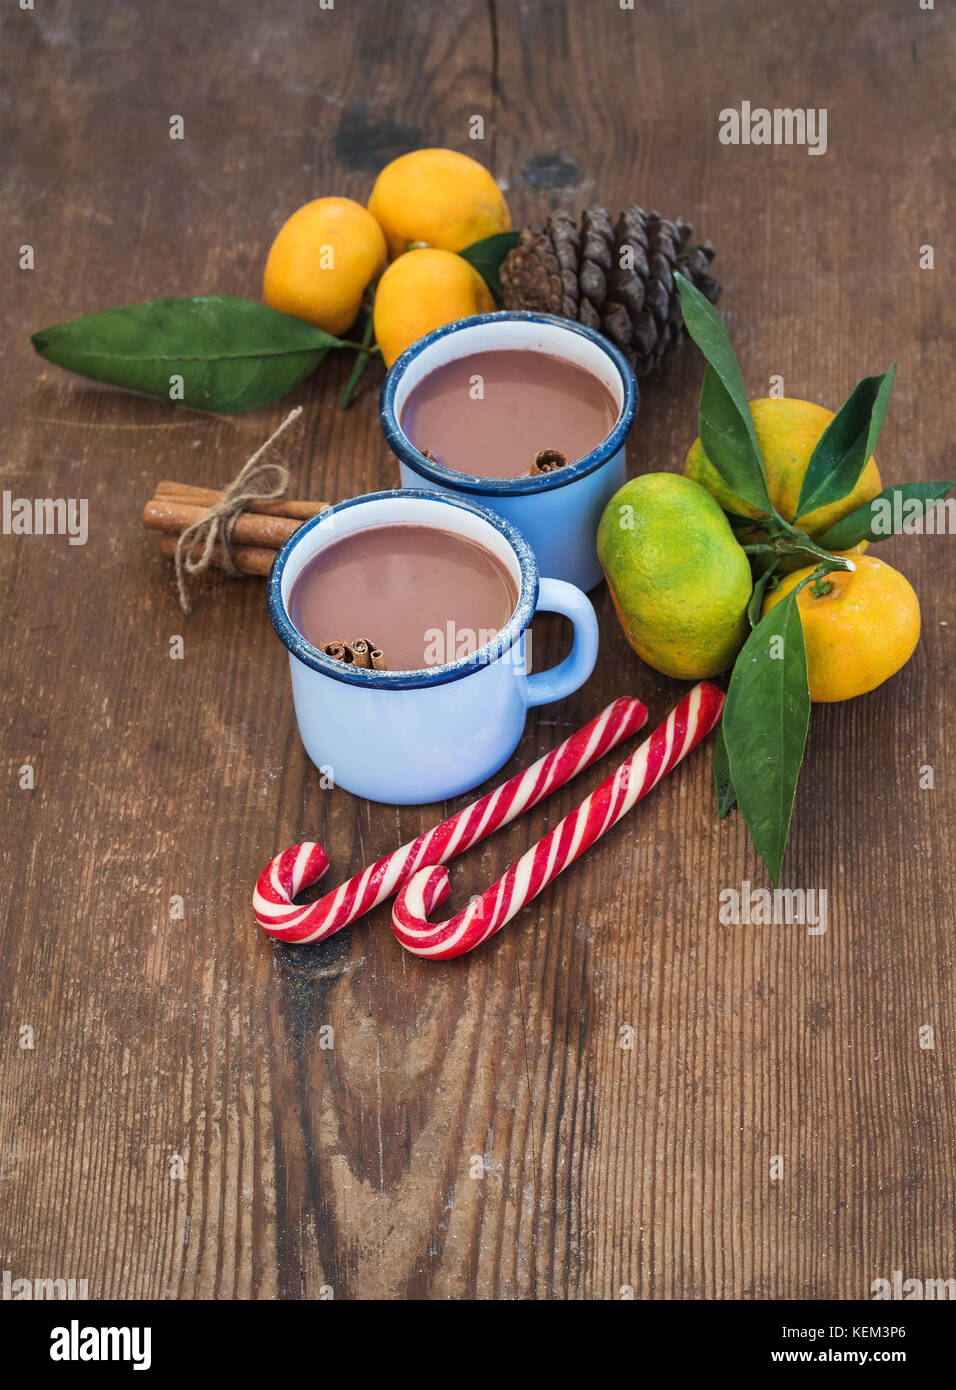 Hot chocolate in enamel metal mugs, fresh mandarines, cinnamon sticks, pine cone and candy canes over rustic wooden - Stock Image